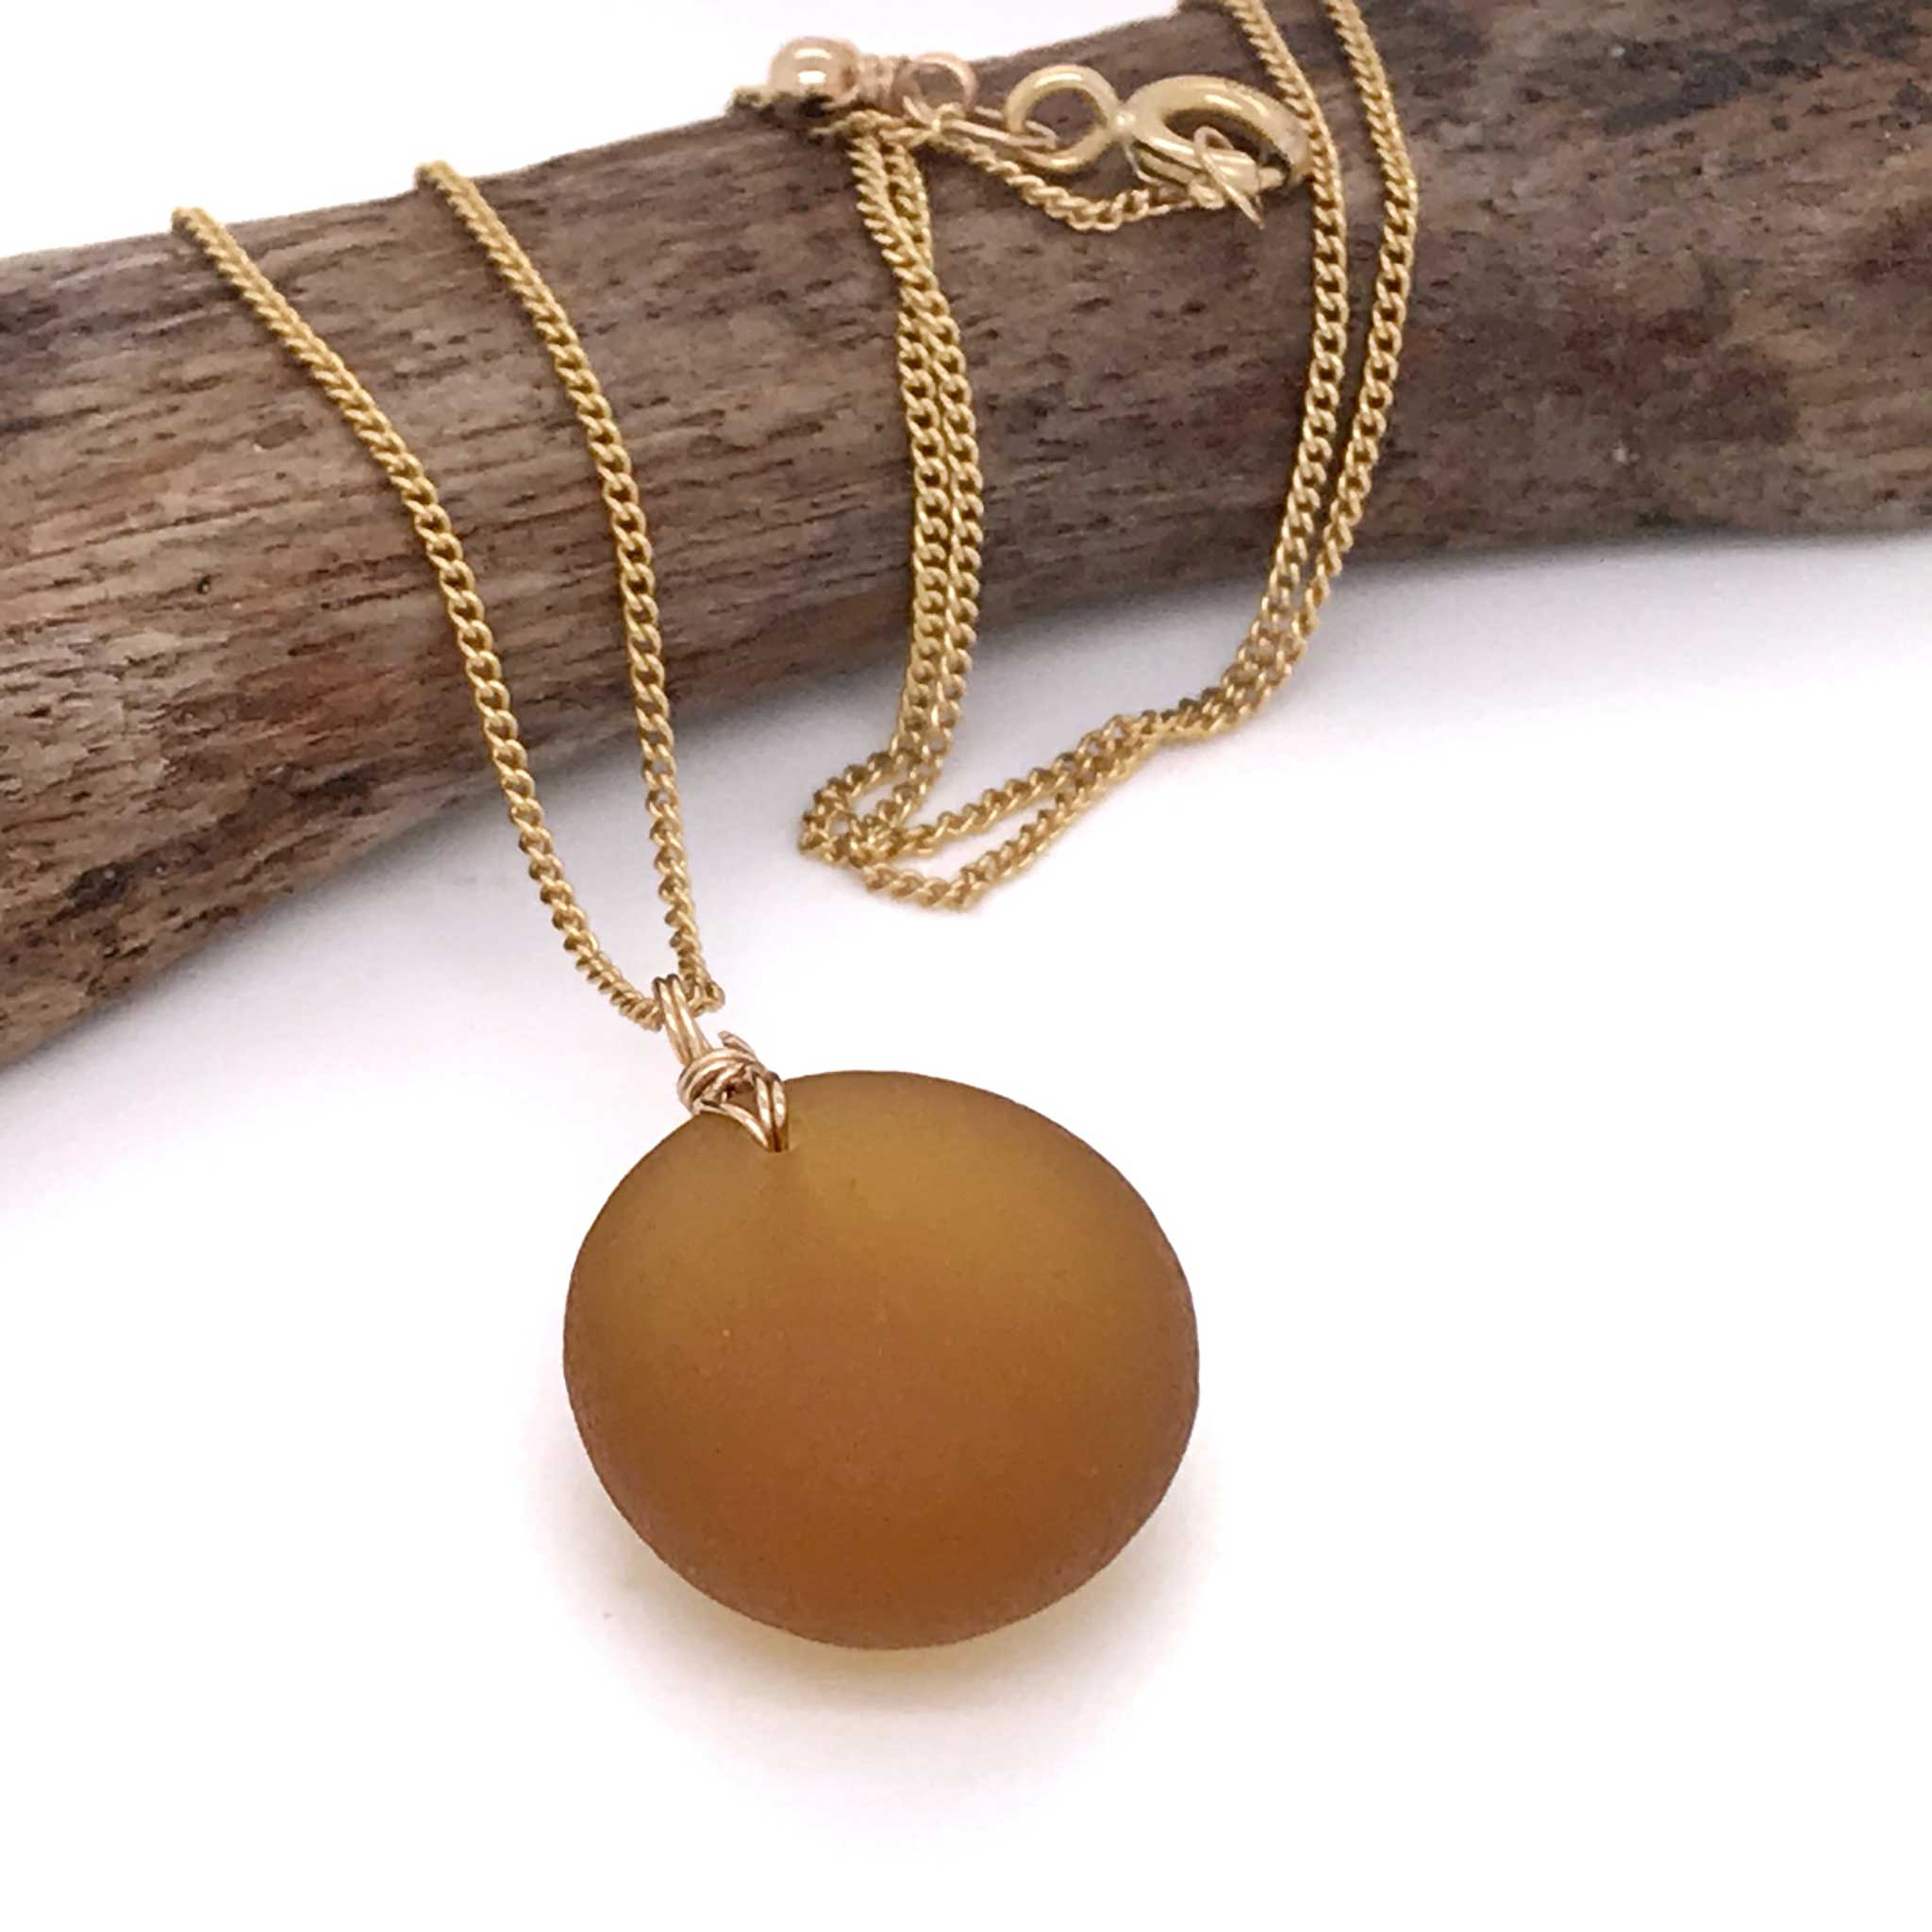 Manly market jeweller Kriket Broadhurst rare amber seaglass necklace gold chain